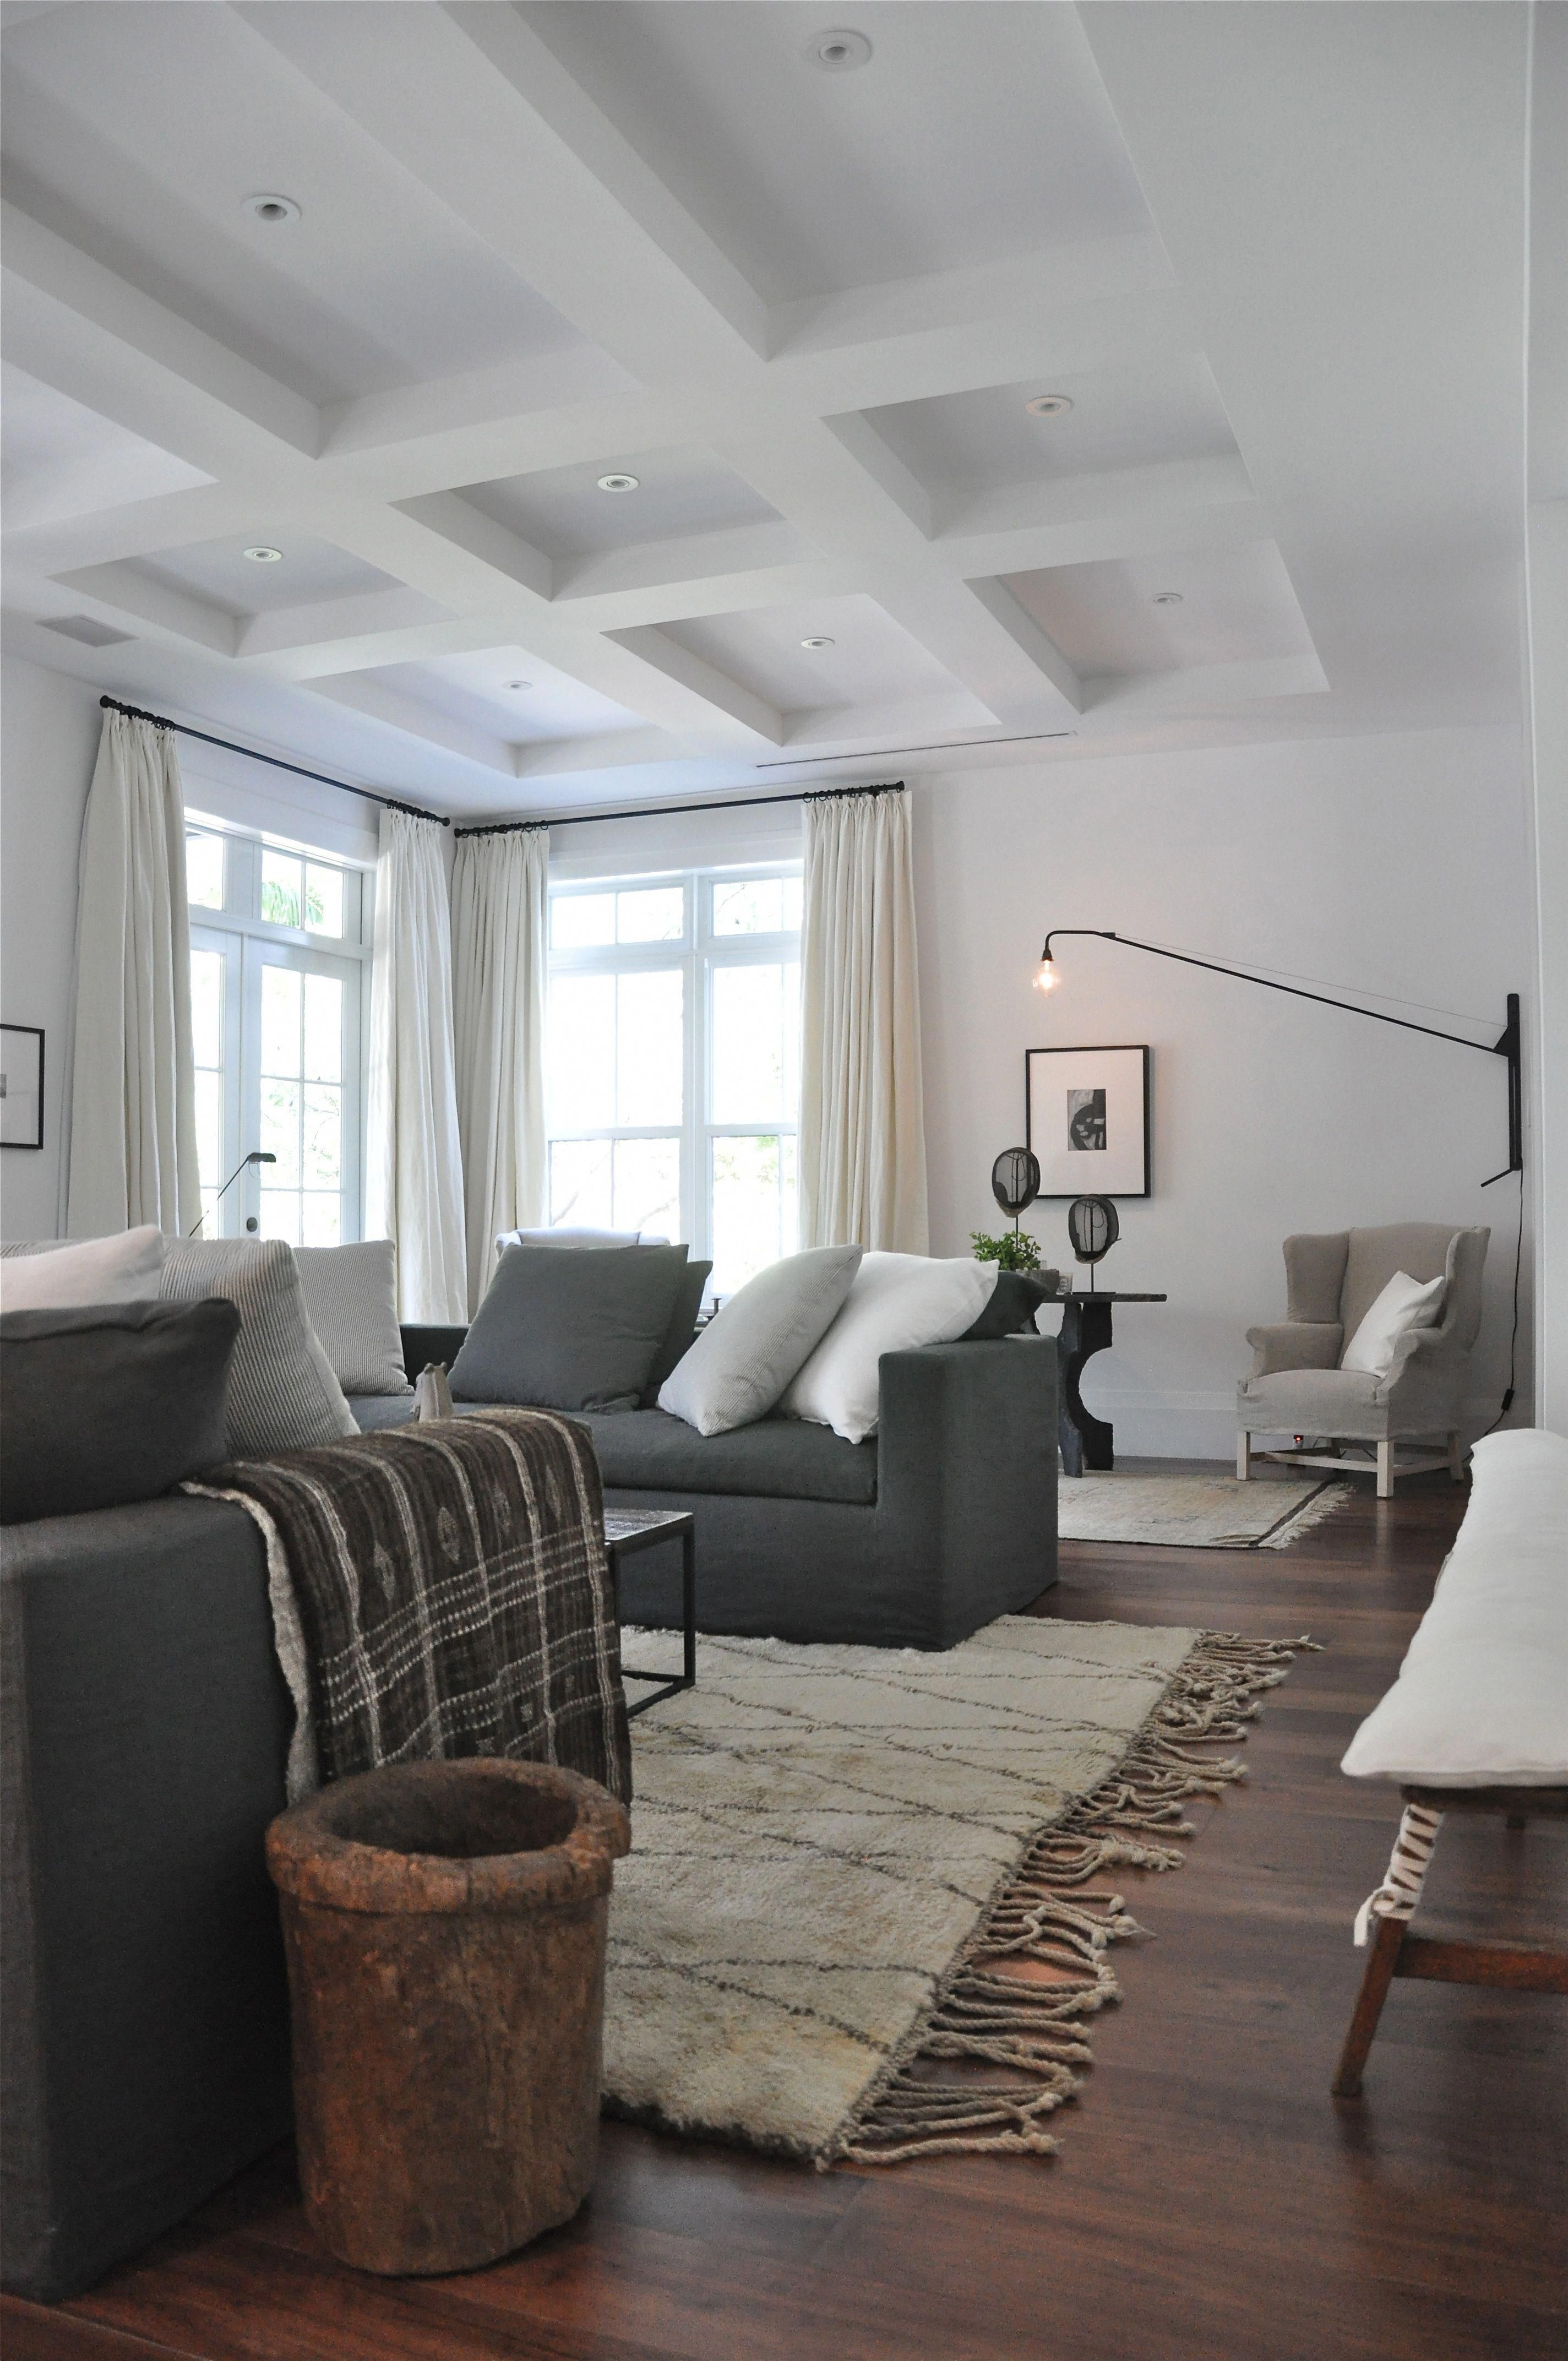 This Amazing Thing Is Certainly A Formidable Style Theme Merbauflooring Dark Wood Floors Living Room Dark Grey Living Room Living Room Wood Floor